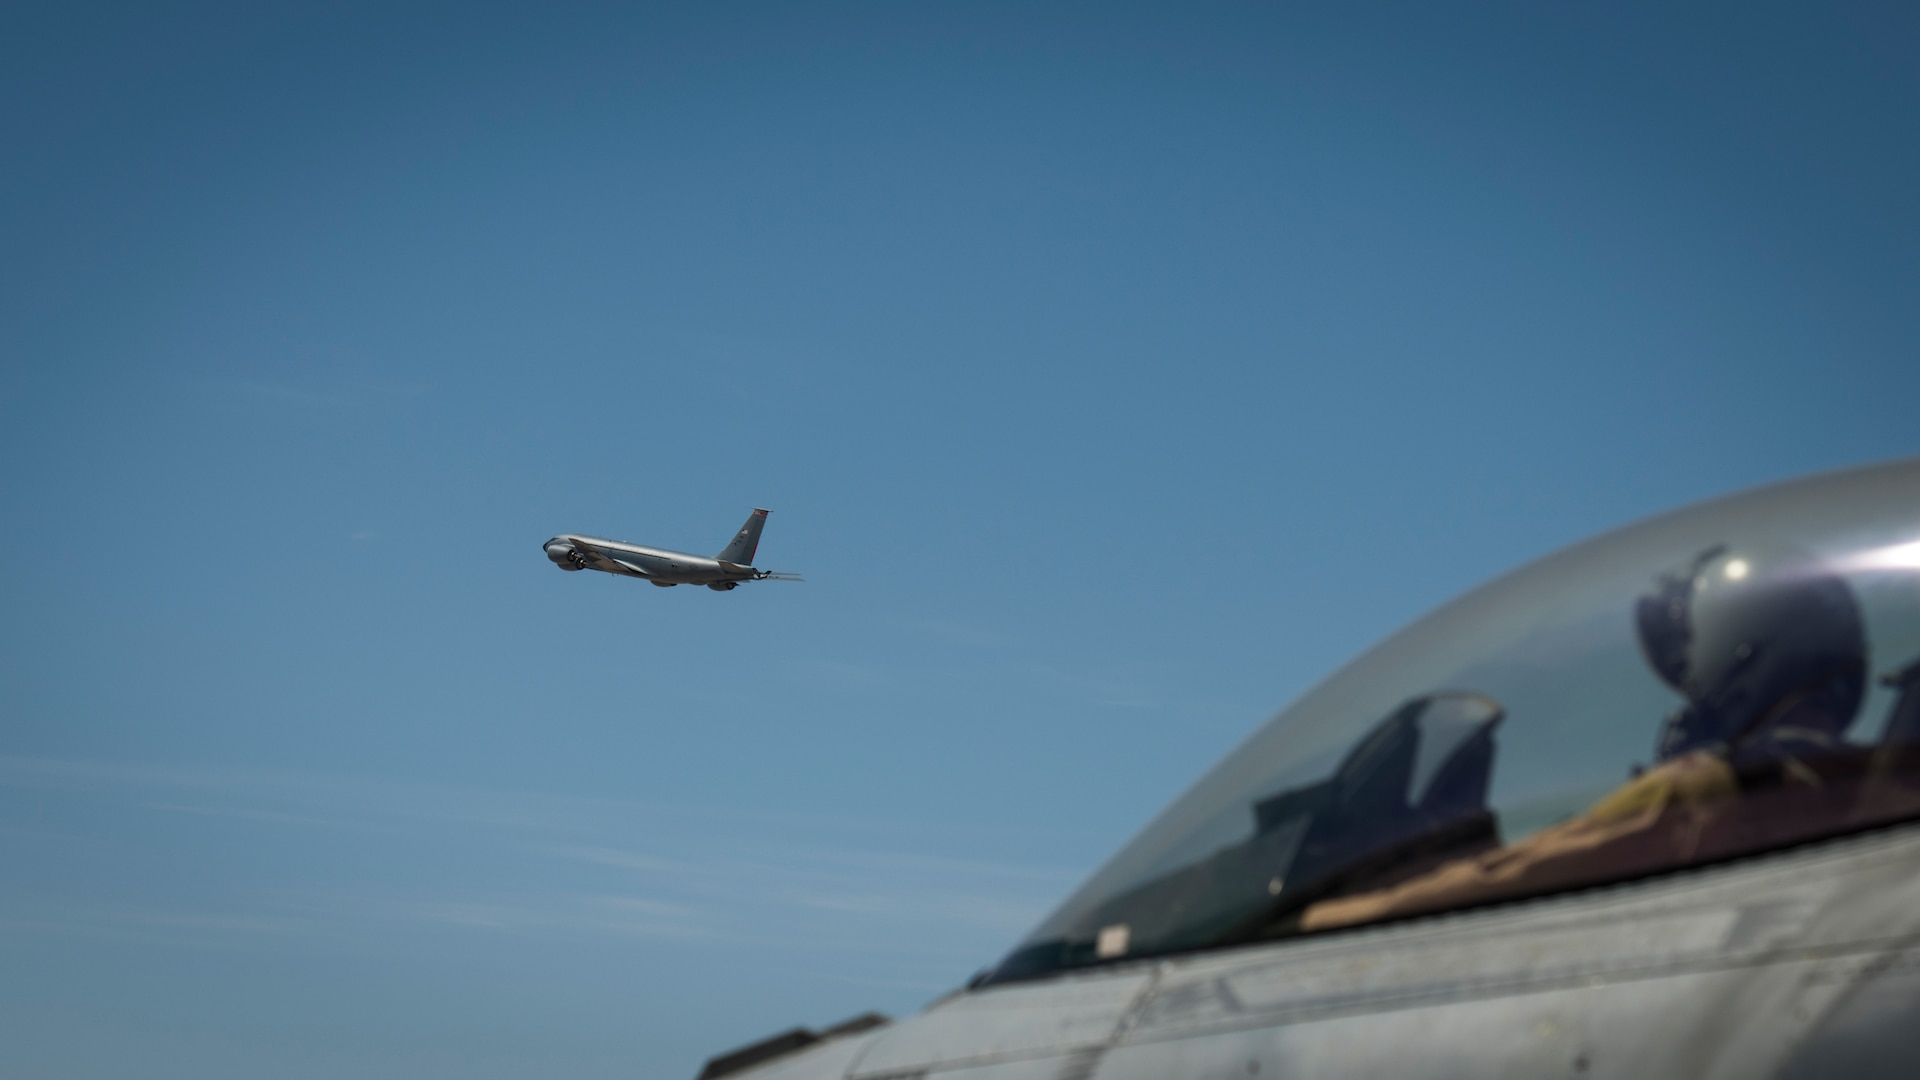 """A U.S. Air Force F-16 """"Viper"""" Fighting Falcon pilot assigned to the 79th Expeditionary Fighter Squadron looks on as a U.S. Air Force KC-135 Stratotanker takes off at an undisclosed location in the U.S. Central Command area of responsibility, Feb. 24, 2020."""